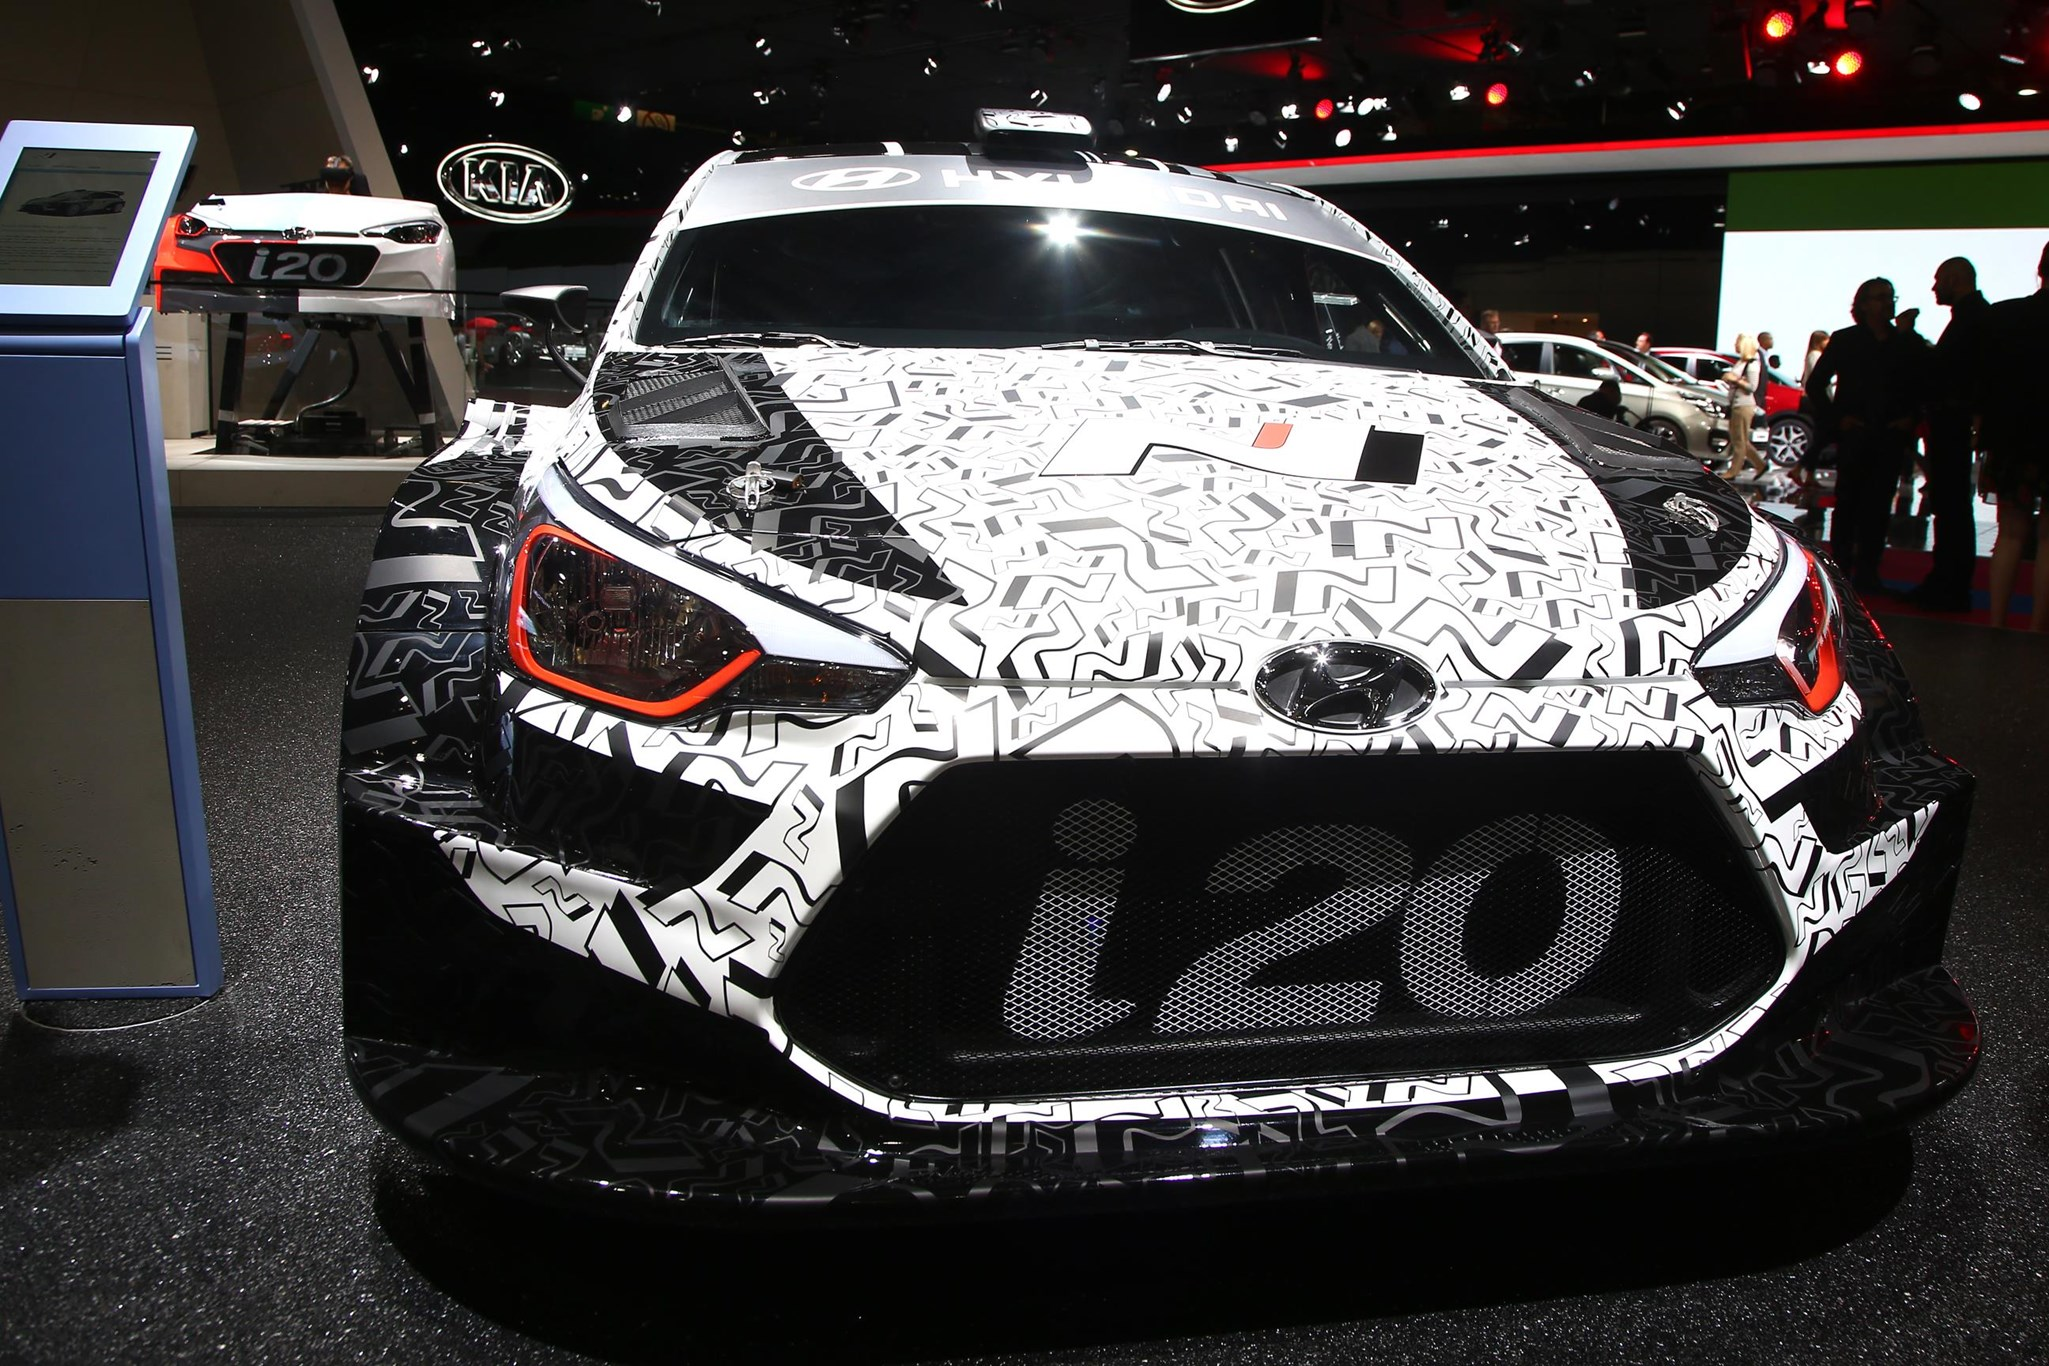 2017 hyundai i20 wrc rally car previewed at paris motor show by car magazine. Black Bedroom Furniture Sets. Home Design Ideas